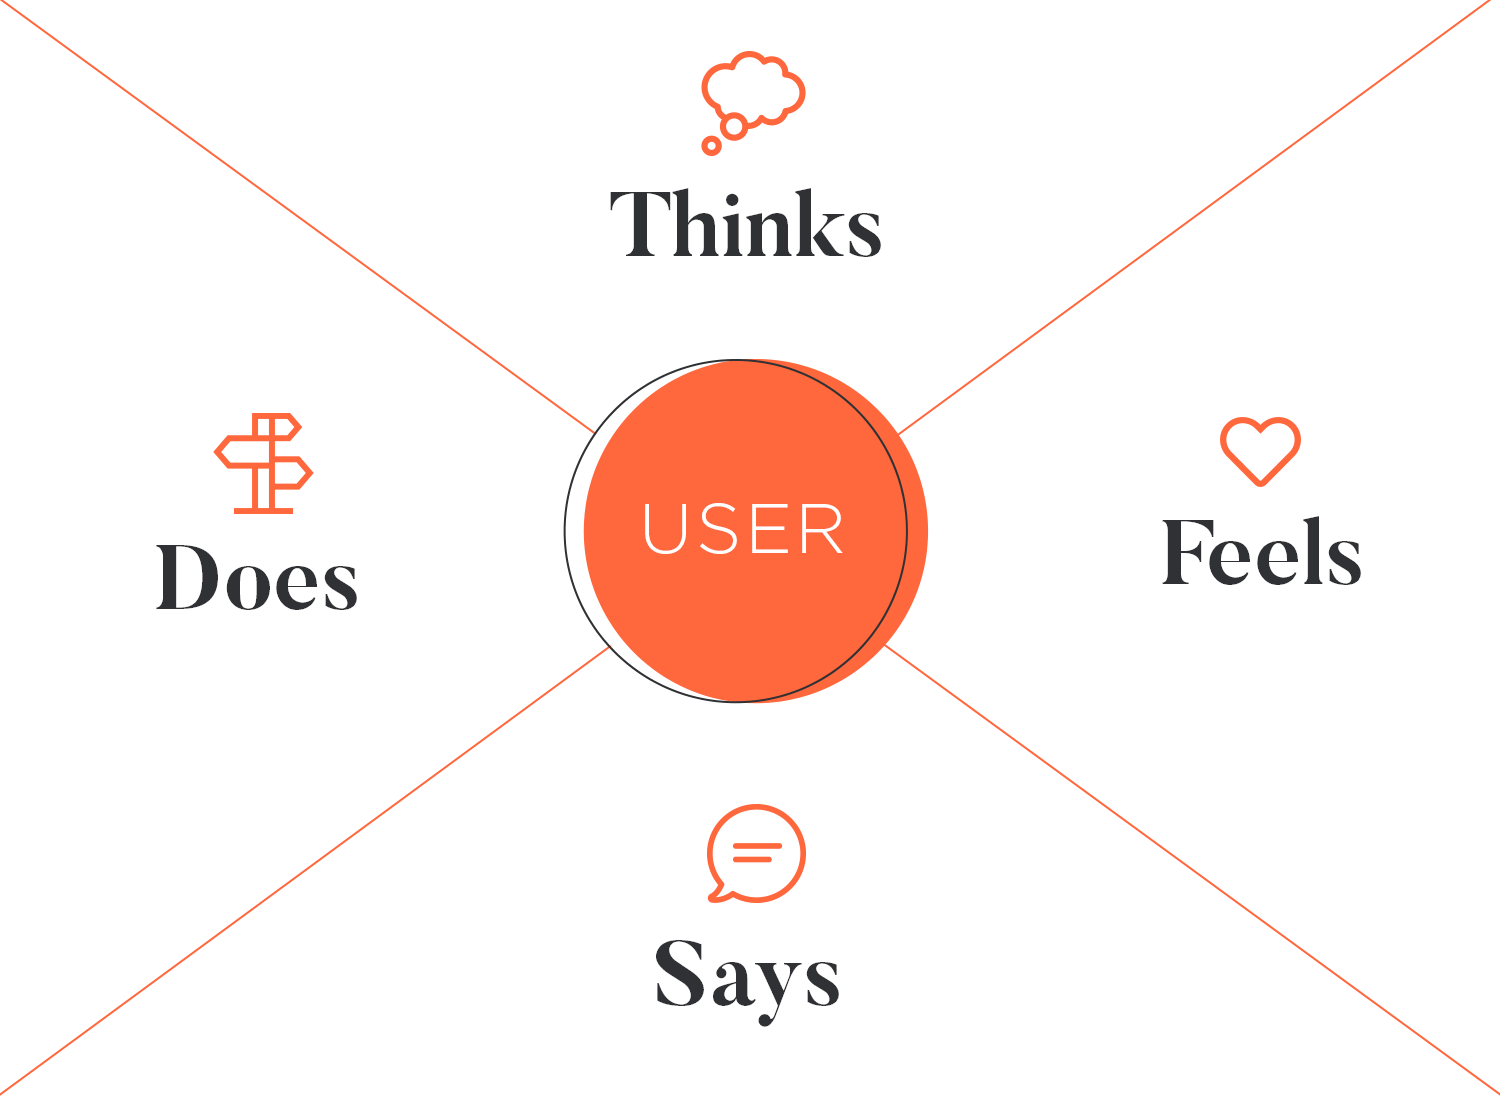 User personas - empathy map with 4 quadrants: see, think, do, feel